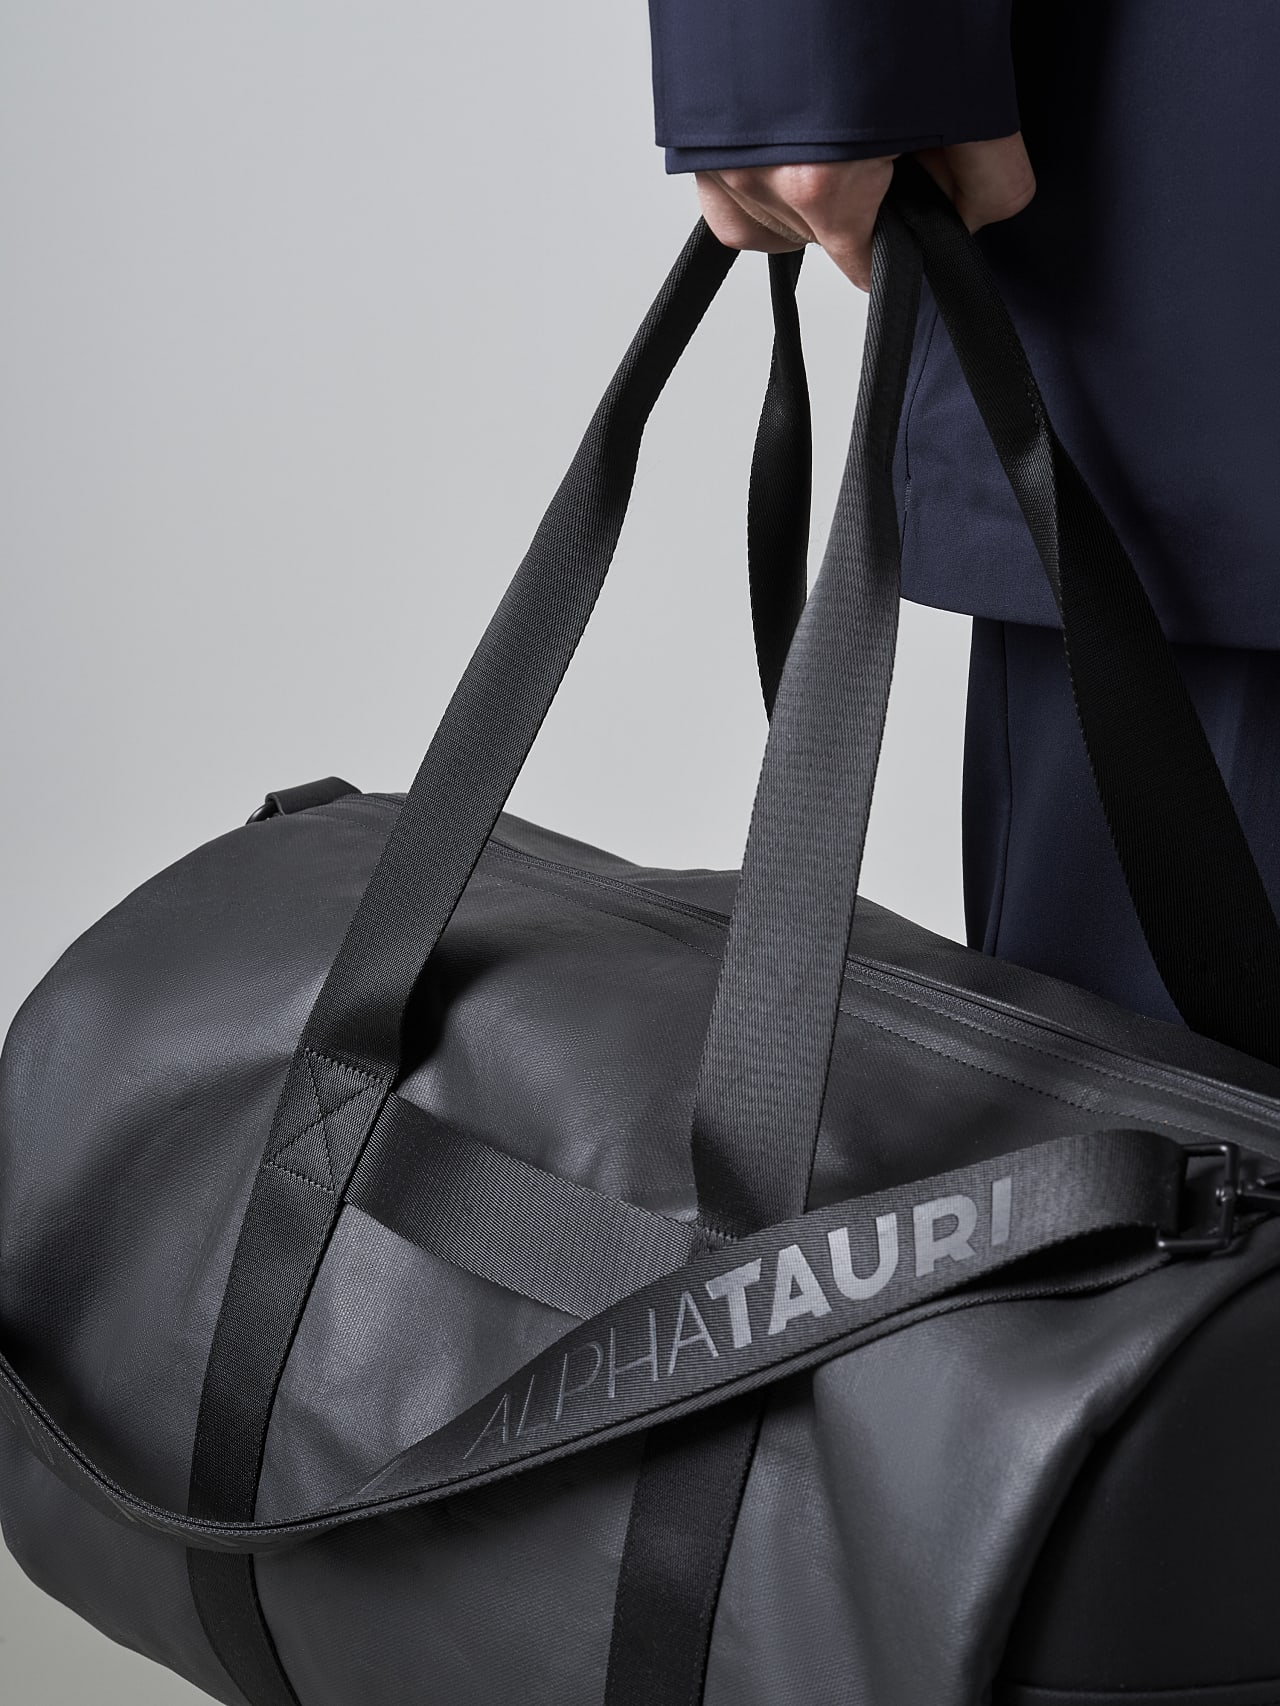 AWEE V4.Y5.02 Water-Repellent Duffle Bag dark grey / anthracite Front Main Alpha Tauri